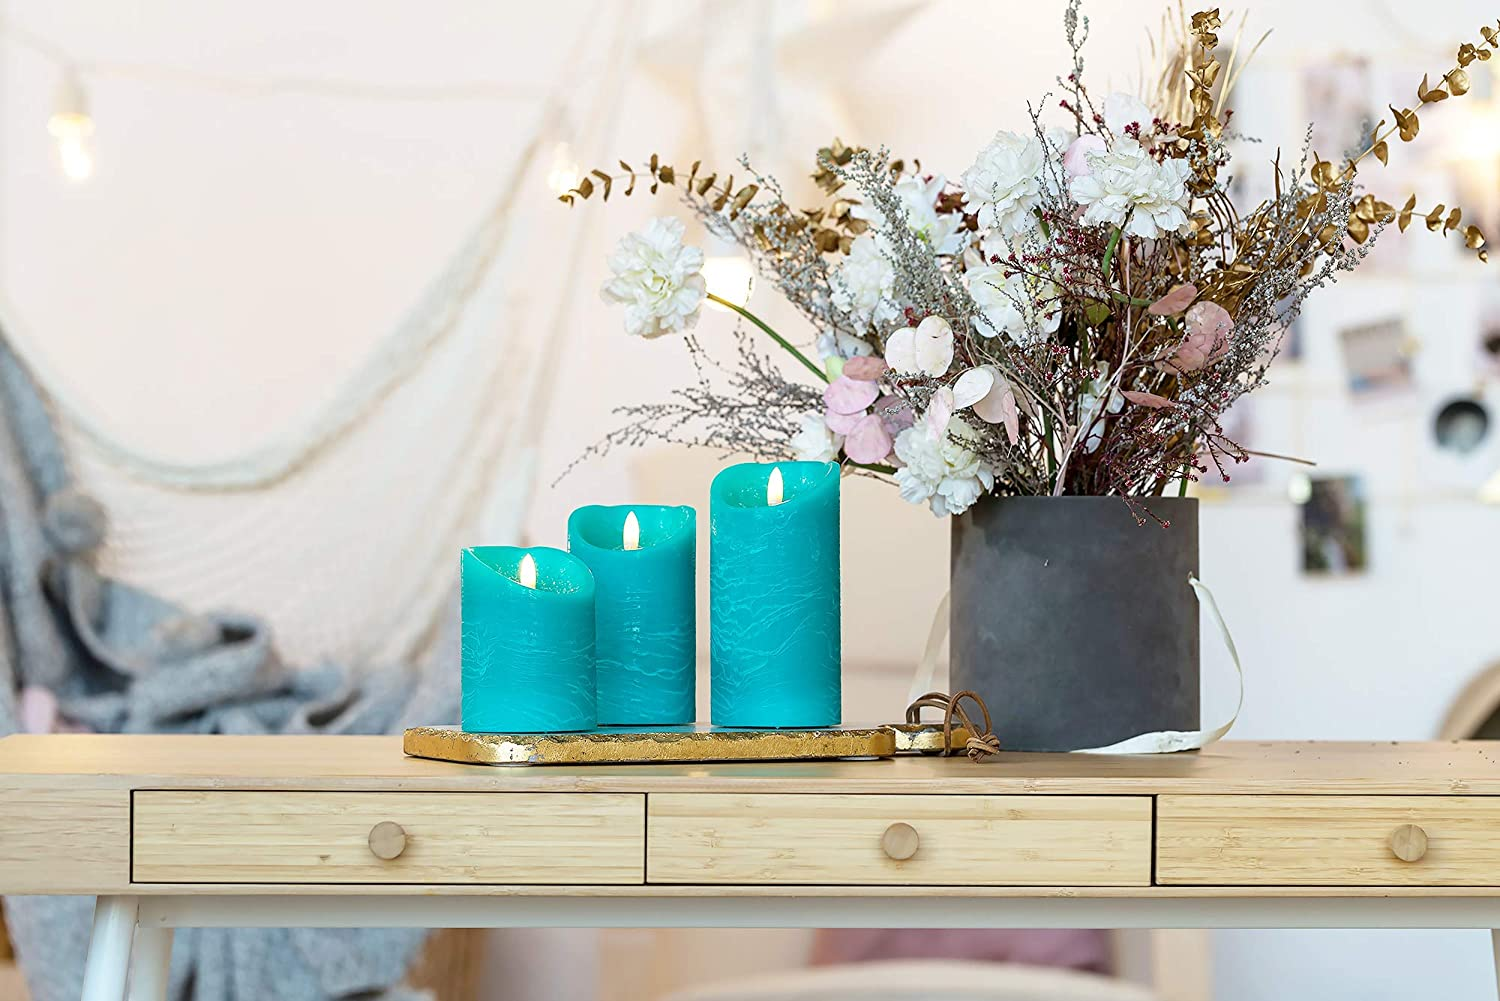 Venta Set of 3 Realistic Flameless Green LED Candles with Remote Control 4 5 6 Electric Wickless Pillar Battery Operated Candles with Flickering Flame Timer